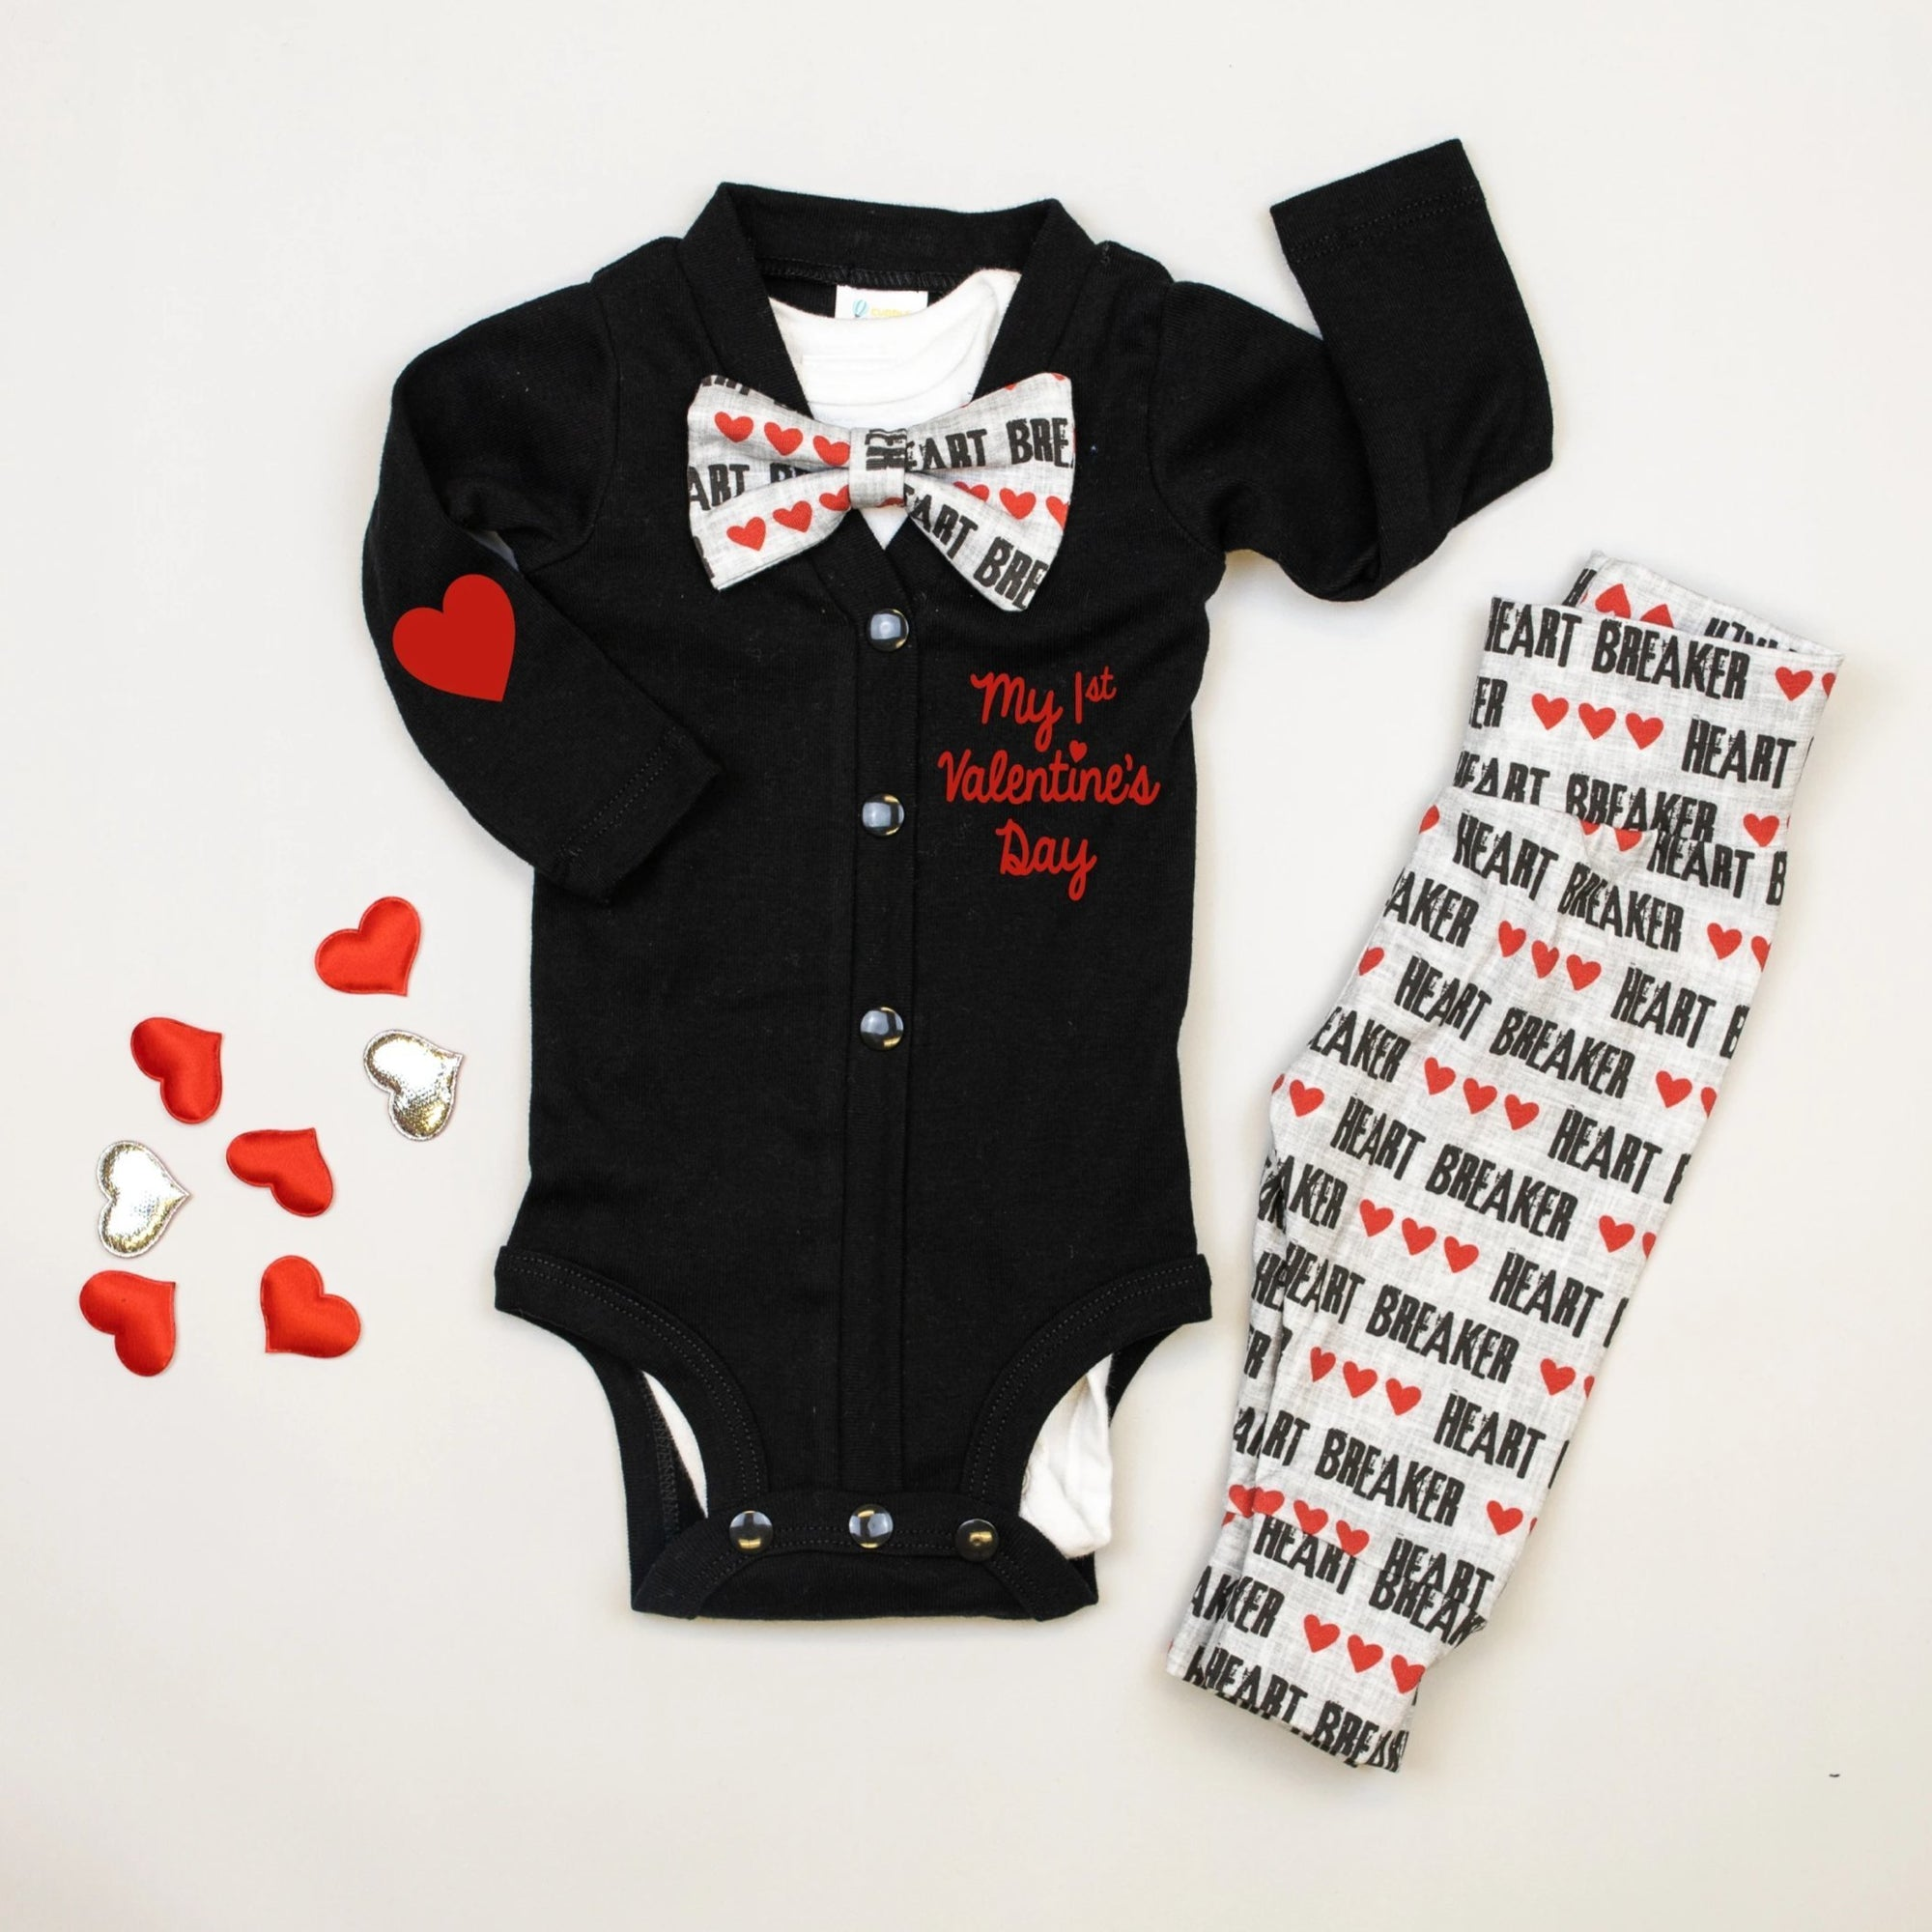 Cuddle Sleep Dream Cardisuit Bundle | Black Heartbreaker (ships in 1 week)